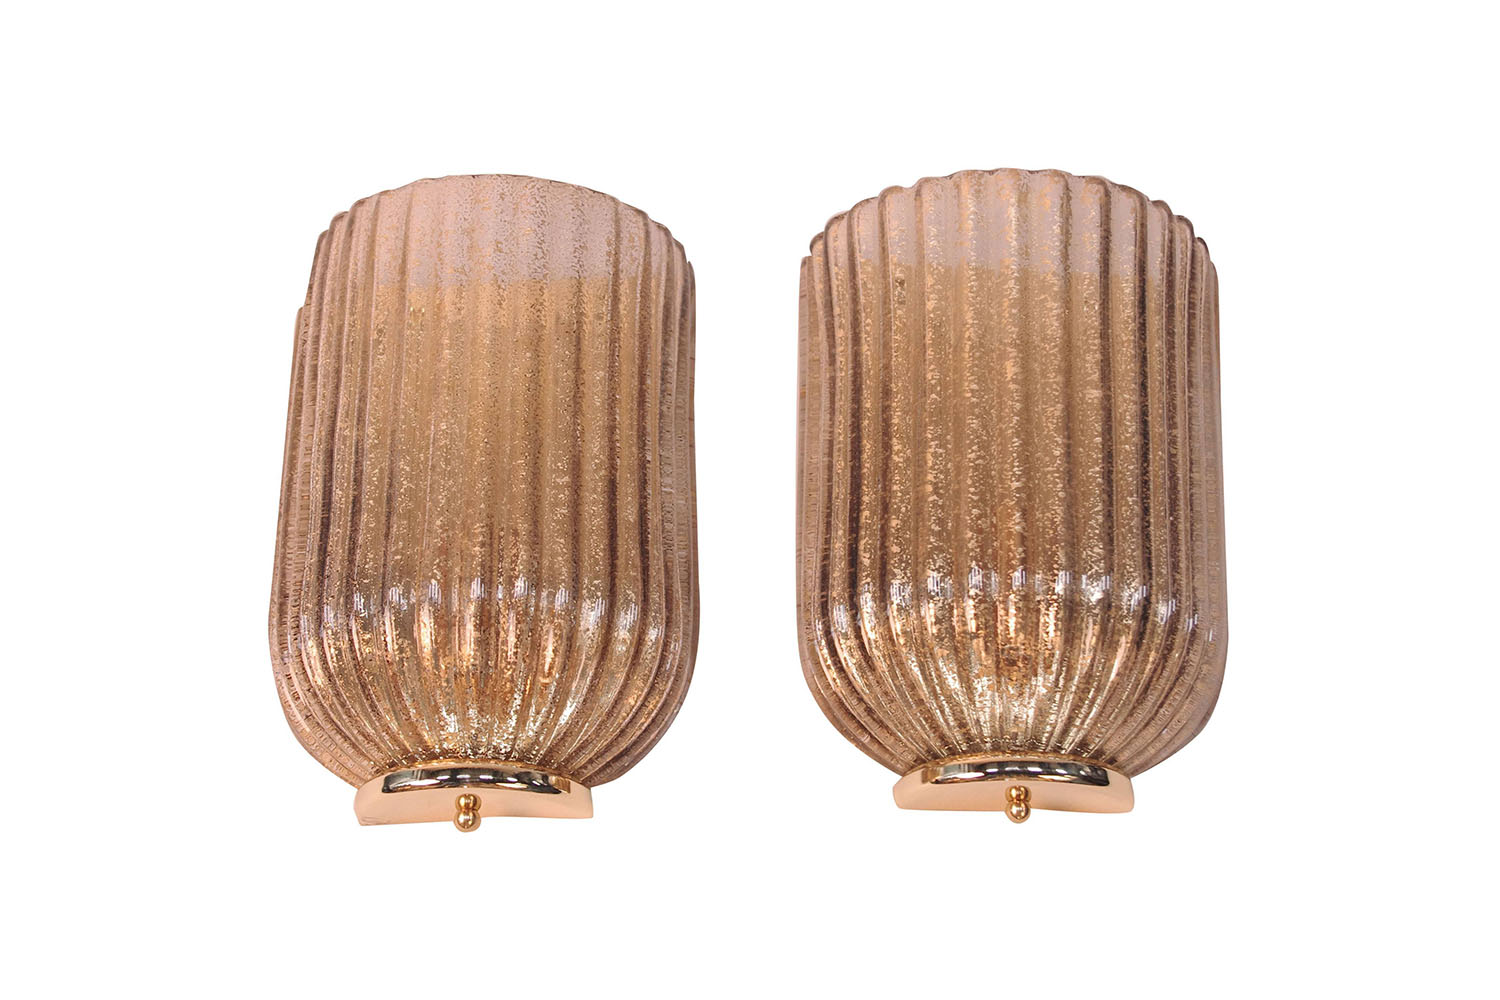 pair of art deco ribbed eglomise glass sconces 20th century